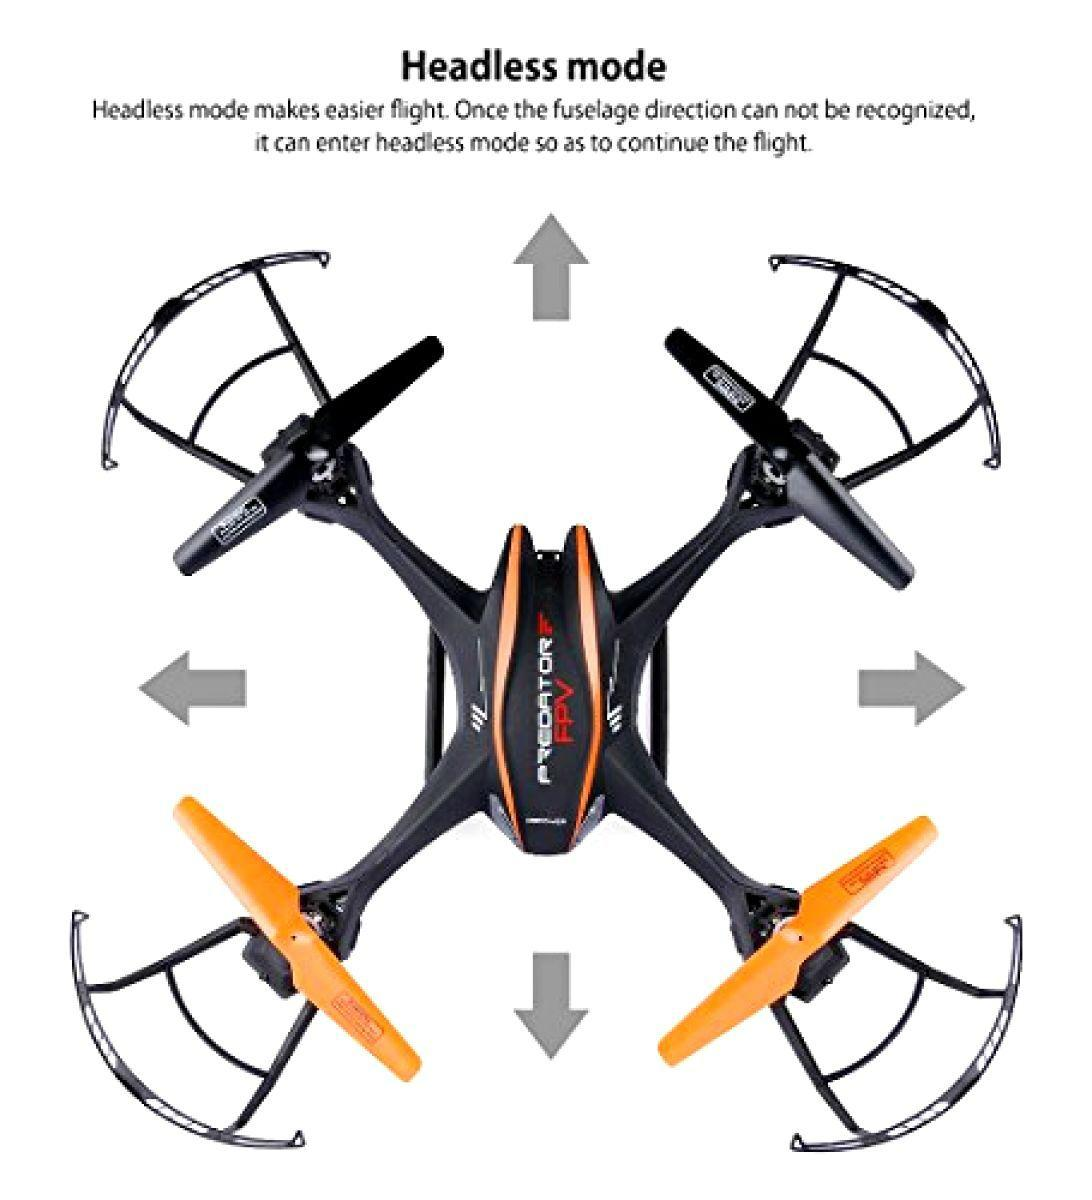 U842 Predator WiFi FPV Drone With HD Camera 24G 4CH 6 Axis Gyro RTF 4